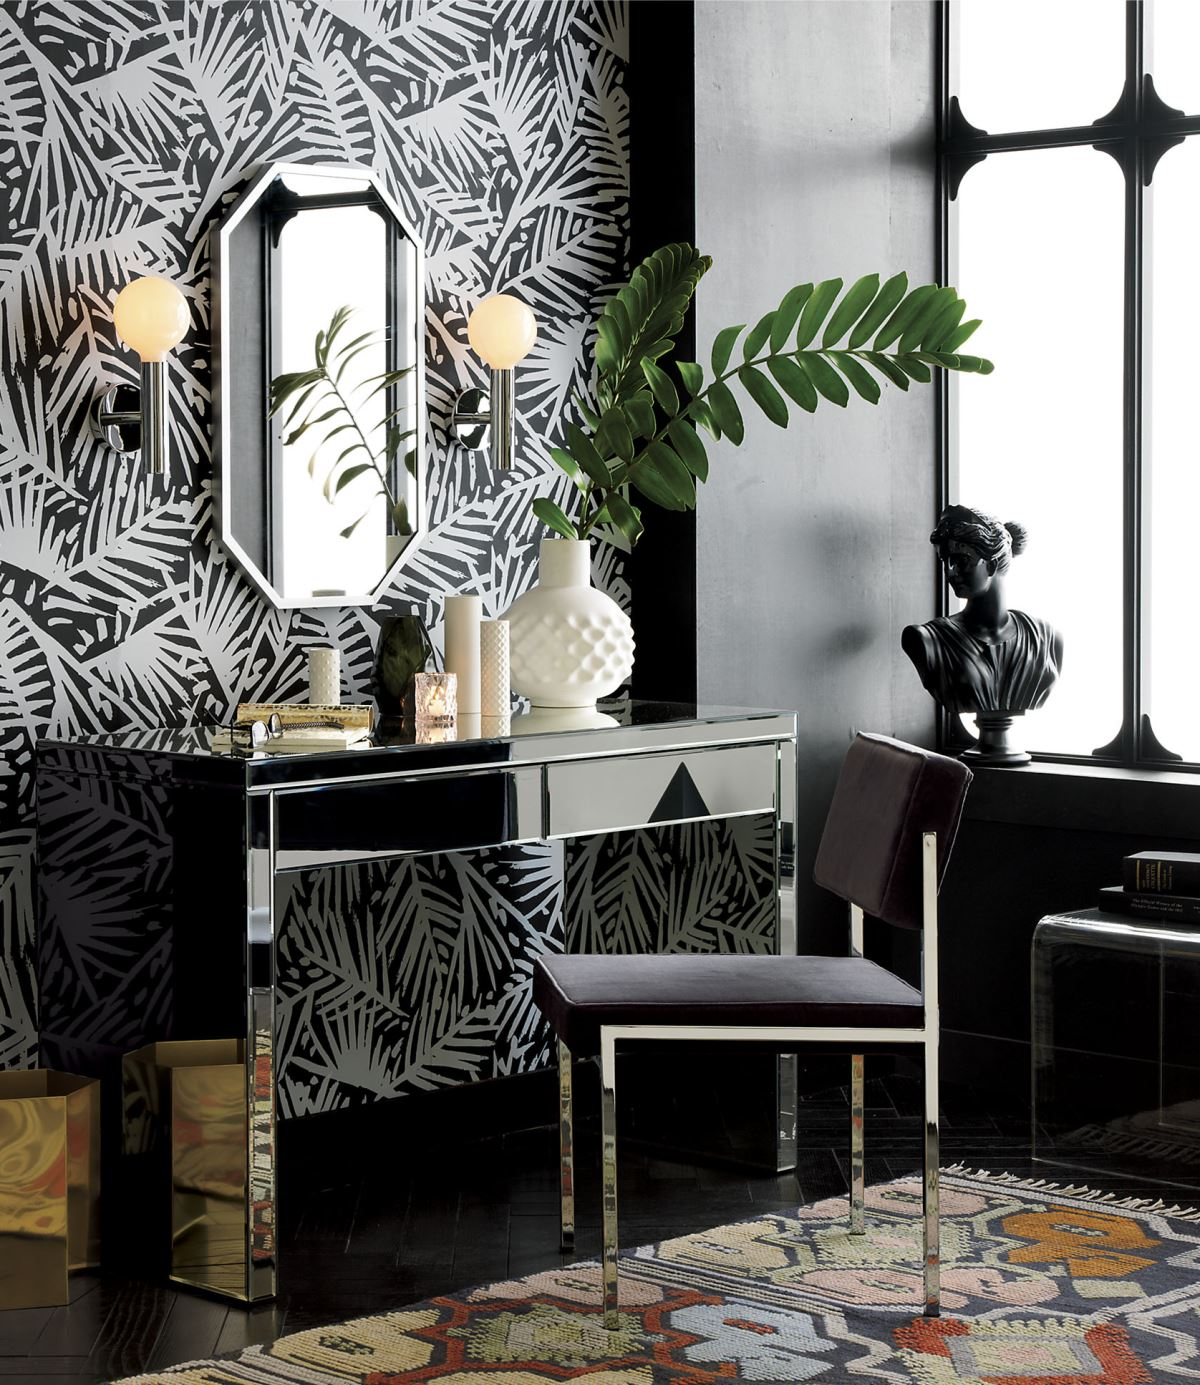 10 Wallpaper Designs That will Fit Perfectly in your Home wallpaper designs 10 Wallpaper Designs That will Fit Perfectly in your Home 10 Wallpaper Designs That will Fit Perfectly in your Home4